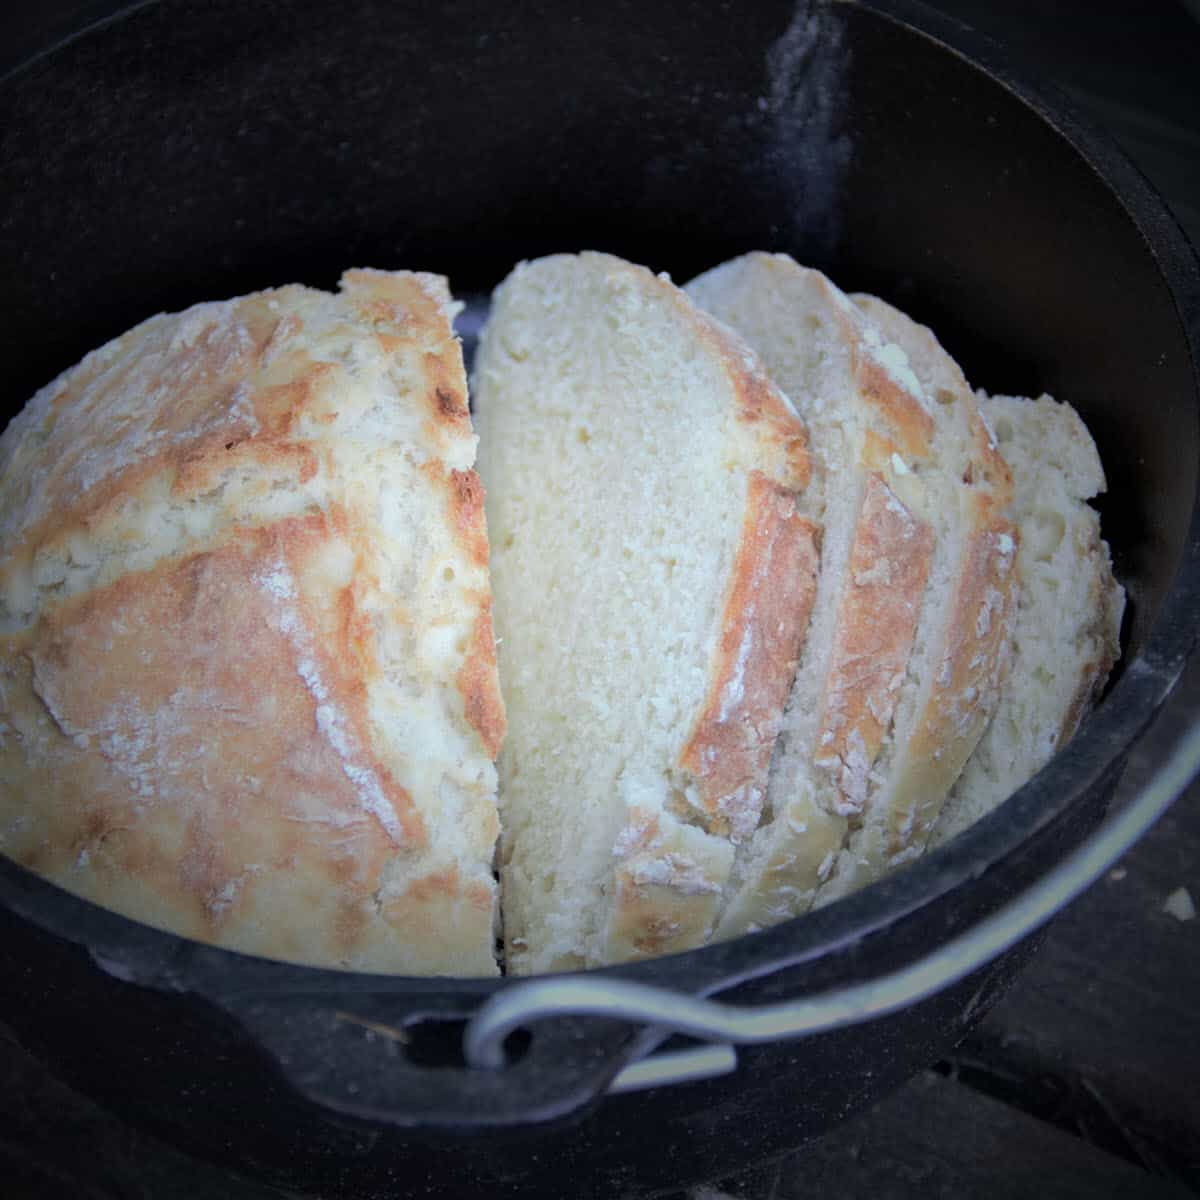 Soda Bread cooked in a Dutch oven is a great camping option for bread. Keep it in the Dutch oven to keep warm before serving. #bushcooking #sodabread #dutchovenbread